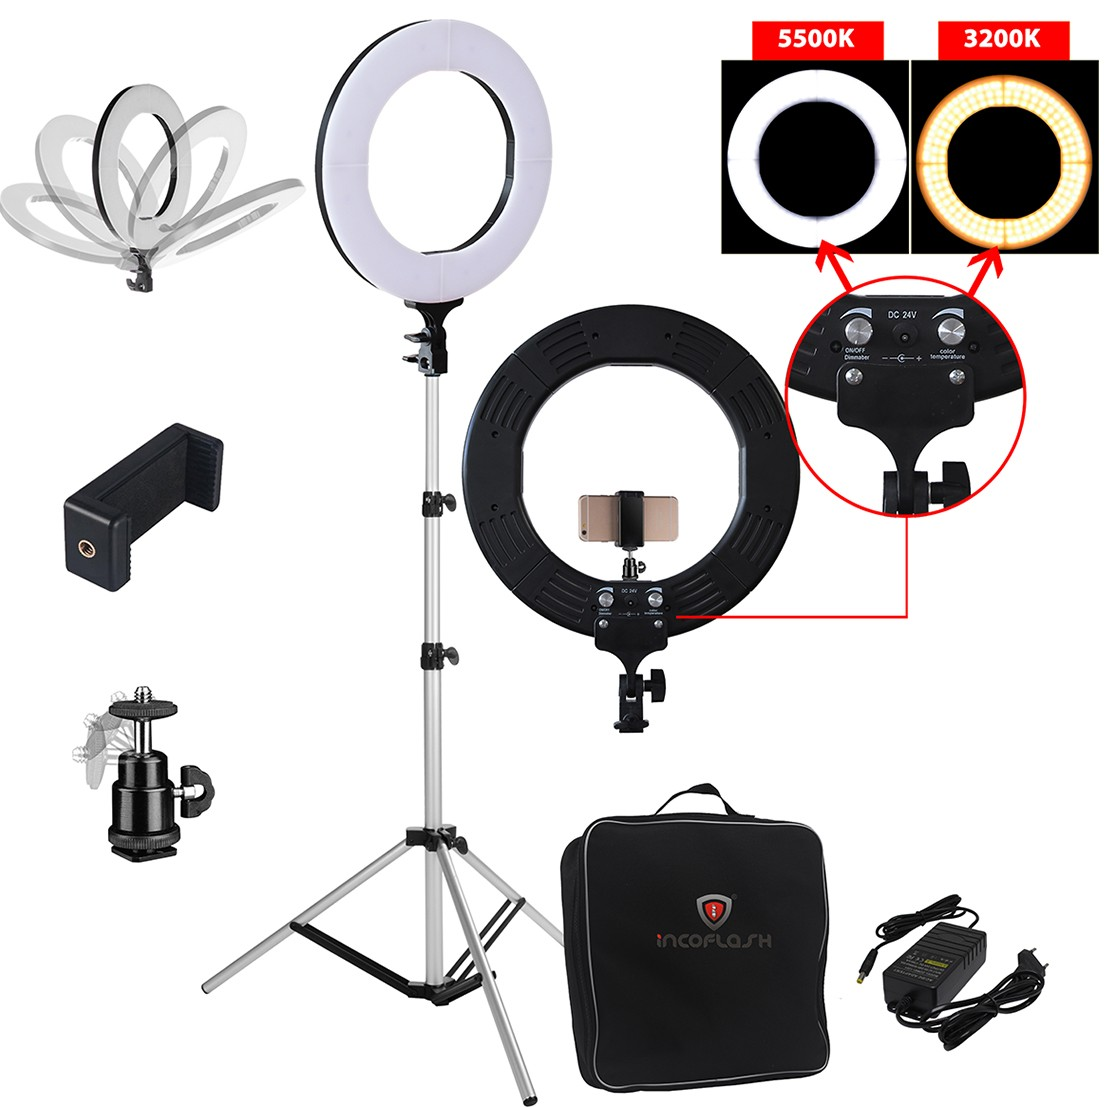 KIT ILUMINADOR LED RING LIGHT 60W BICOLOR PROFISSIOONAL COM TRIPÉ